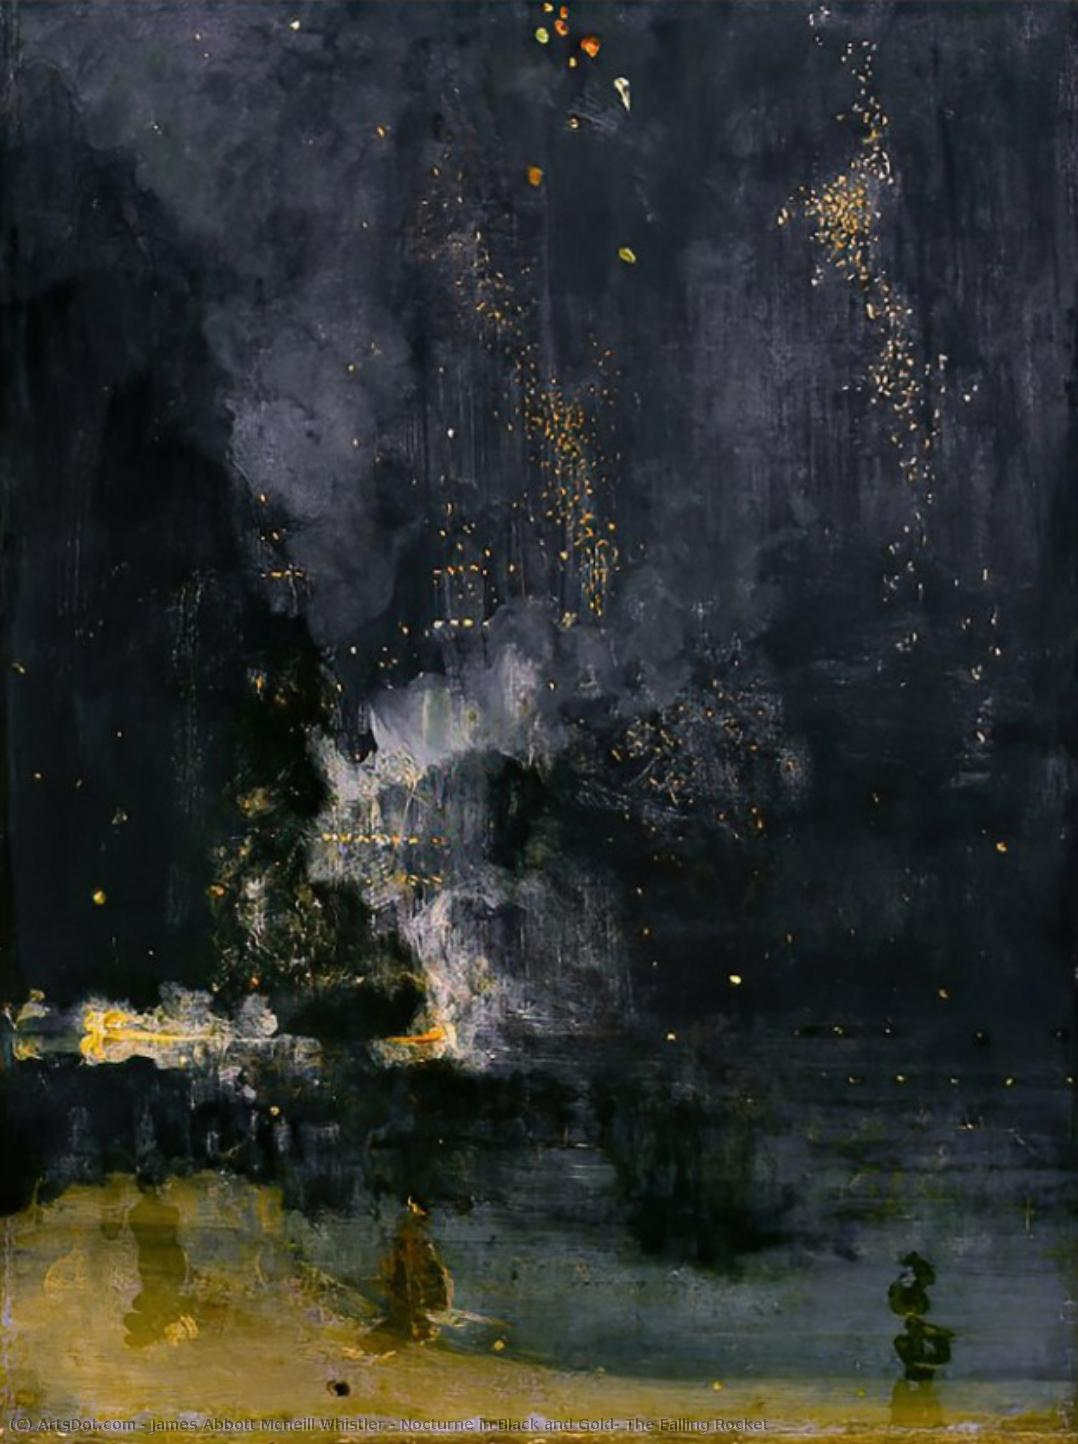 Wikioo.org - The Encyclopedia of Fine Arts - Painting, Artwork by James Abbott Mcneill Whistler - Nocturne in Black and Gold: The Falling Rocket